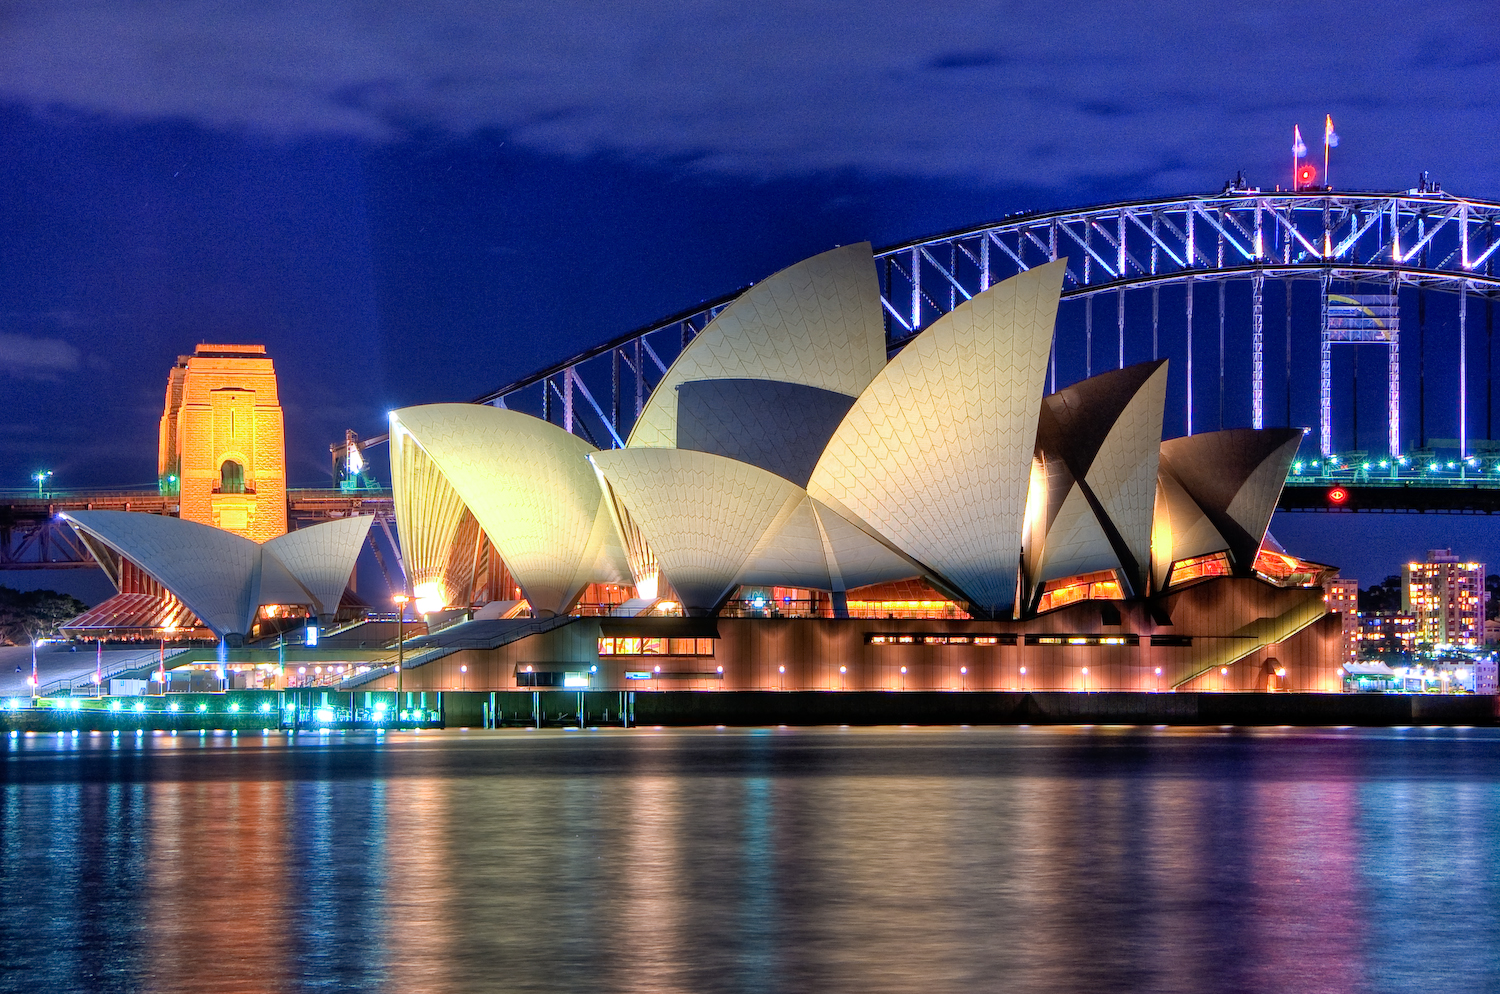 sydney opera house information and images 2012 world ForSydney Opera Housse